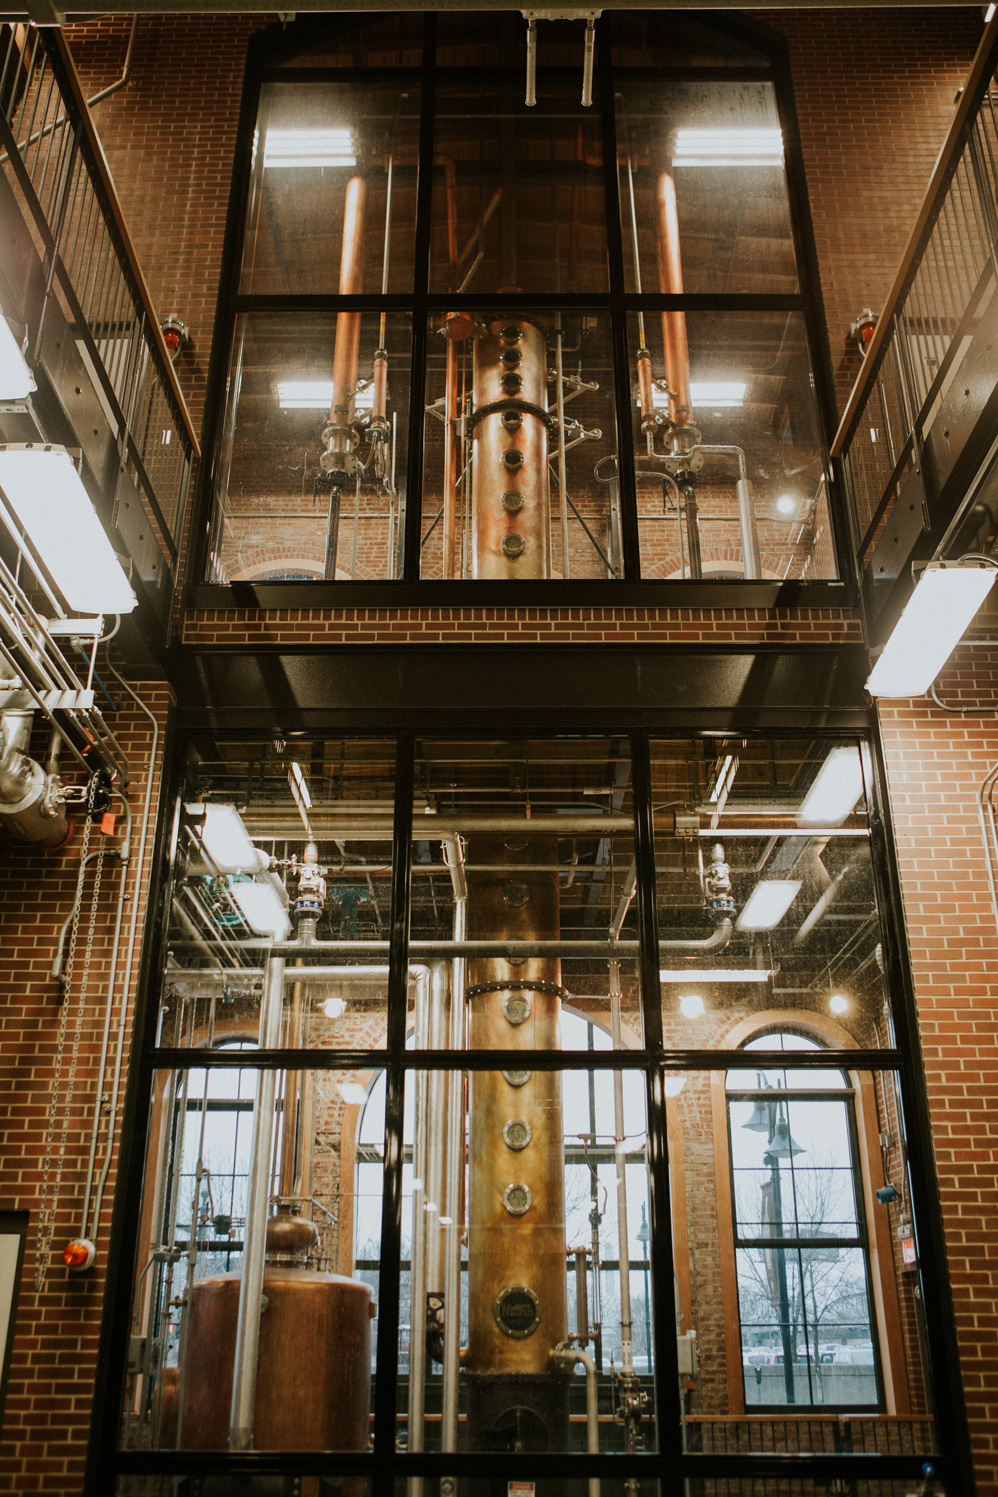 CindyGiovagnoli_Kentucky_distillery_craft_whisky_whiskey_bourbon_Jim_Beam_Angels_Envy_roadtrip_Louisville_Ky-012.jpg